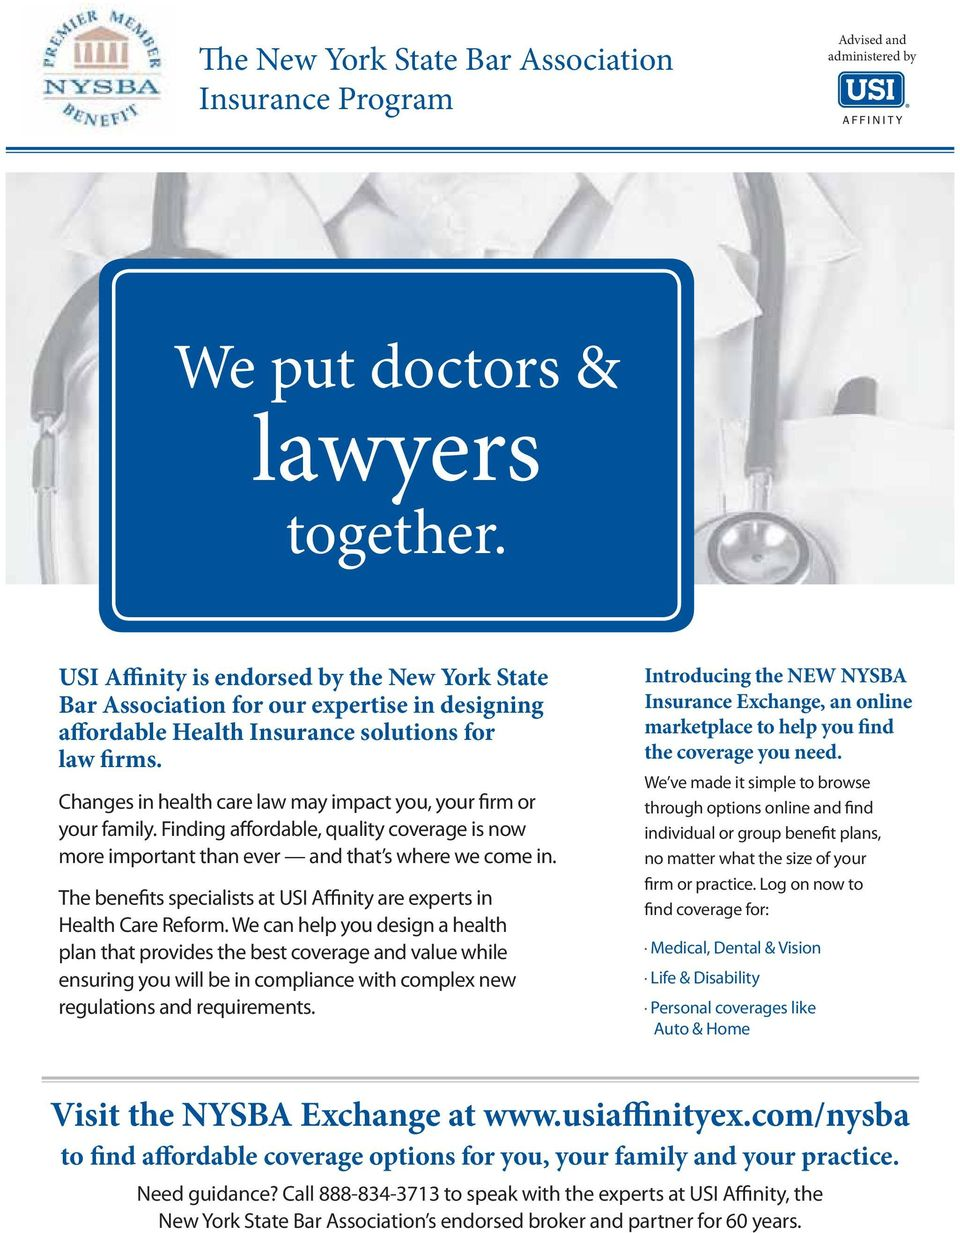 Changes in health care law may impact you, your firm or your family. Finding affordable, quality coverage is now more important than ever and that s where we come in.